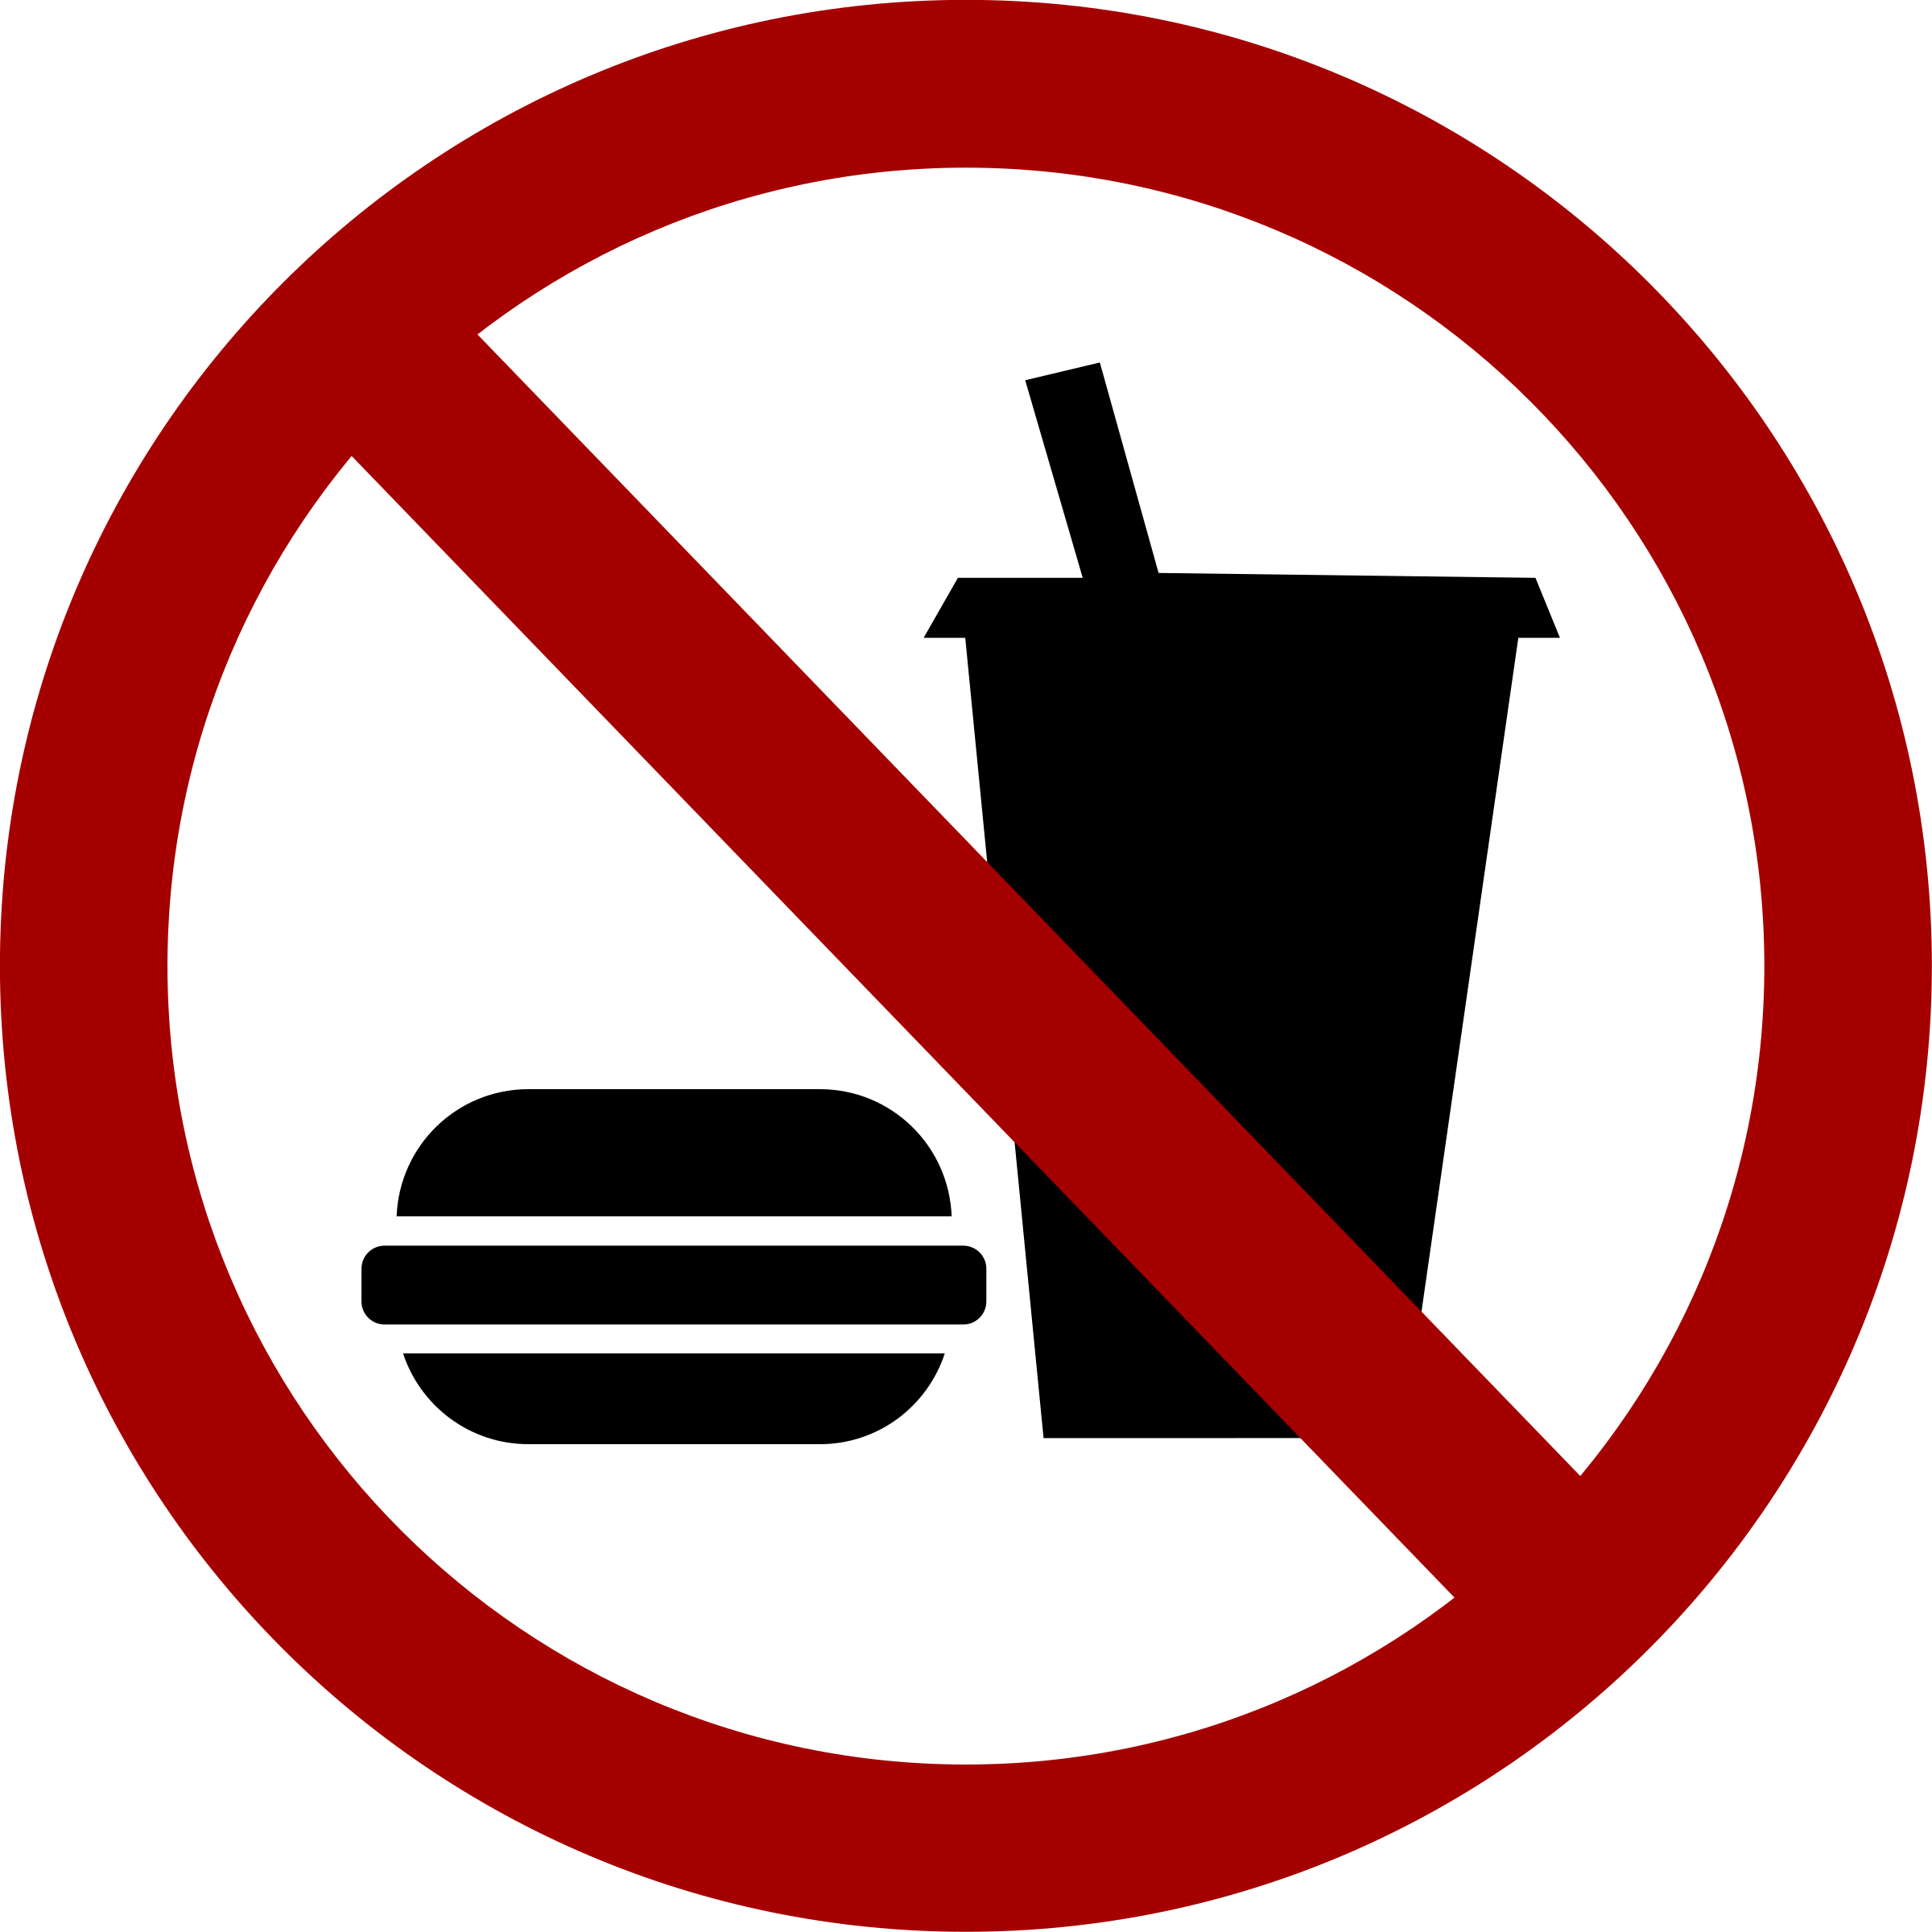 clipart no food drink rh openclipart org no food allowed clipart no eating clipart